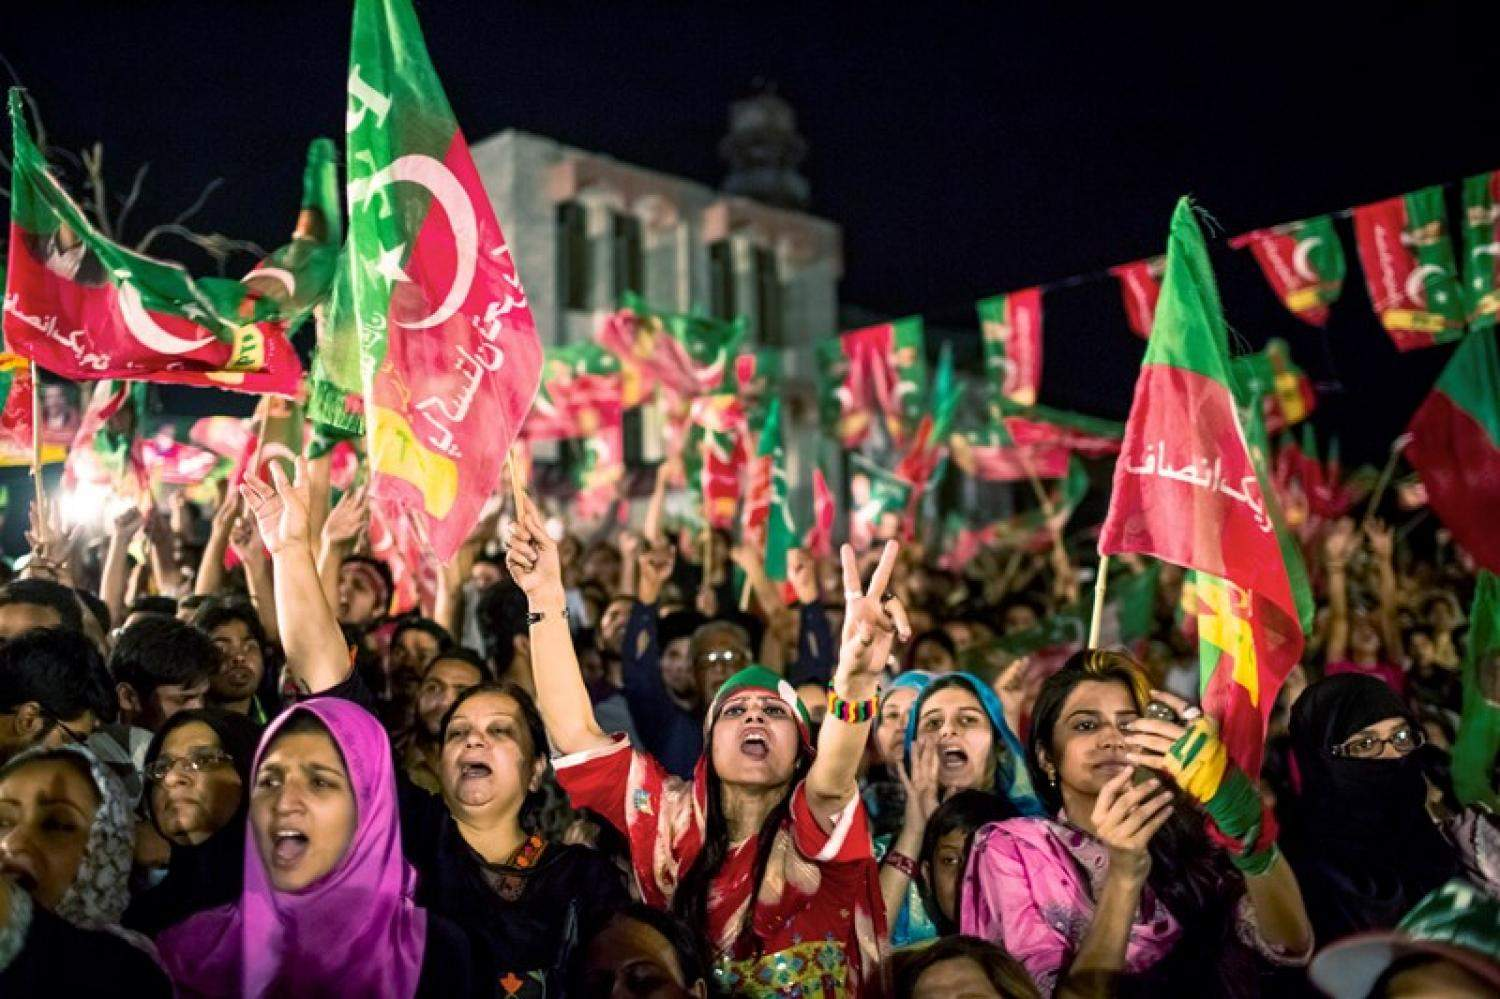 election in pakistan Pakistan's ruling party became the largest group in the senate during a closed-door election on saturday, strengthening its hand before national polls in july despite legal set backs and corruption proceedings against its leader nawaz sharif.